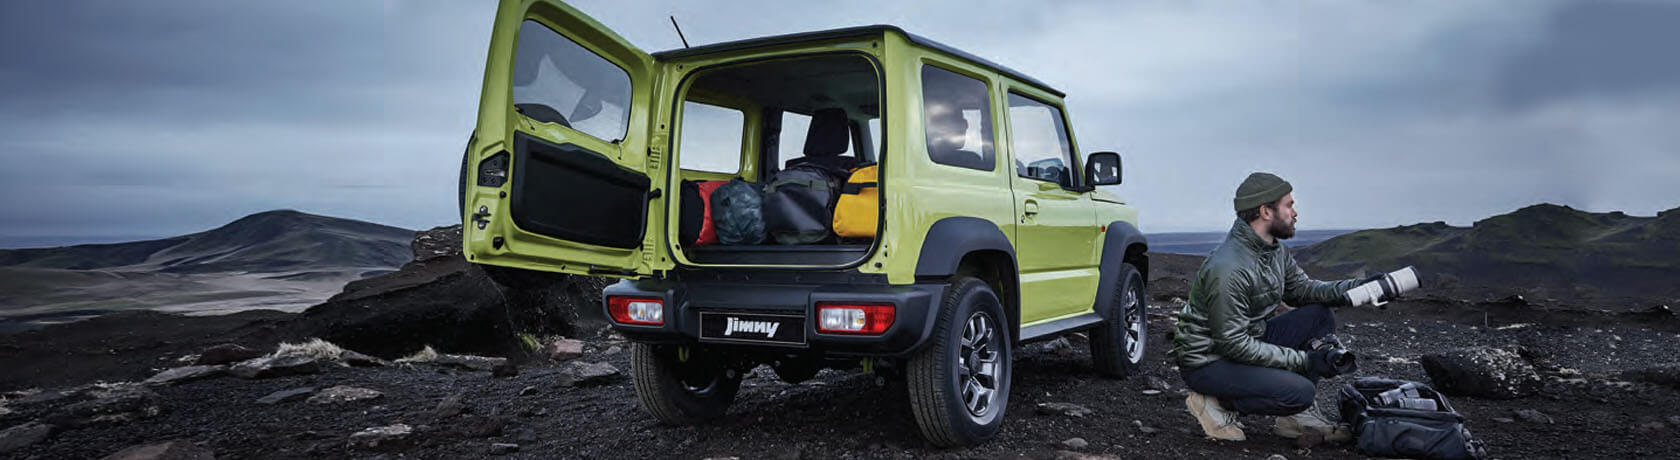 Suzuki jimny for sale brisbane